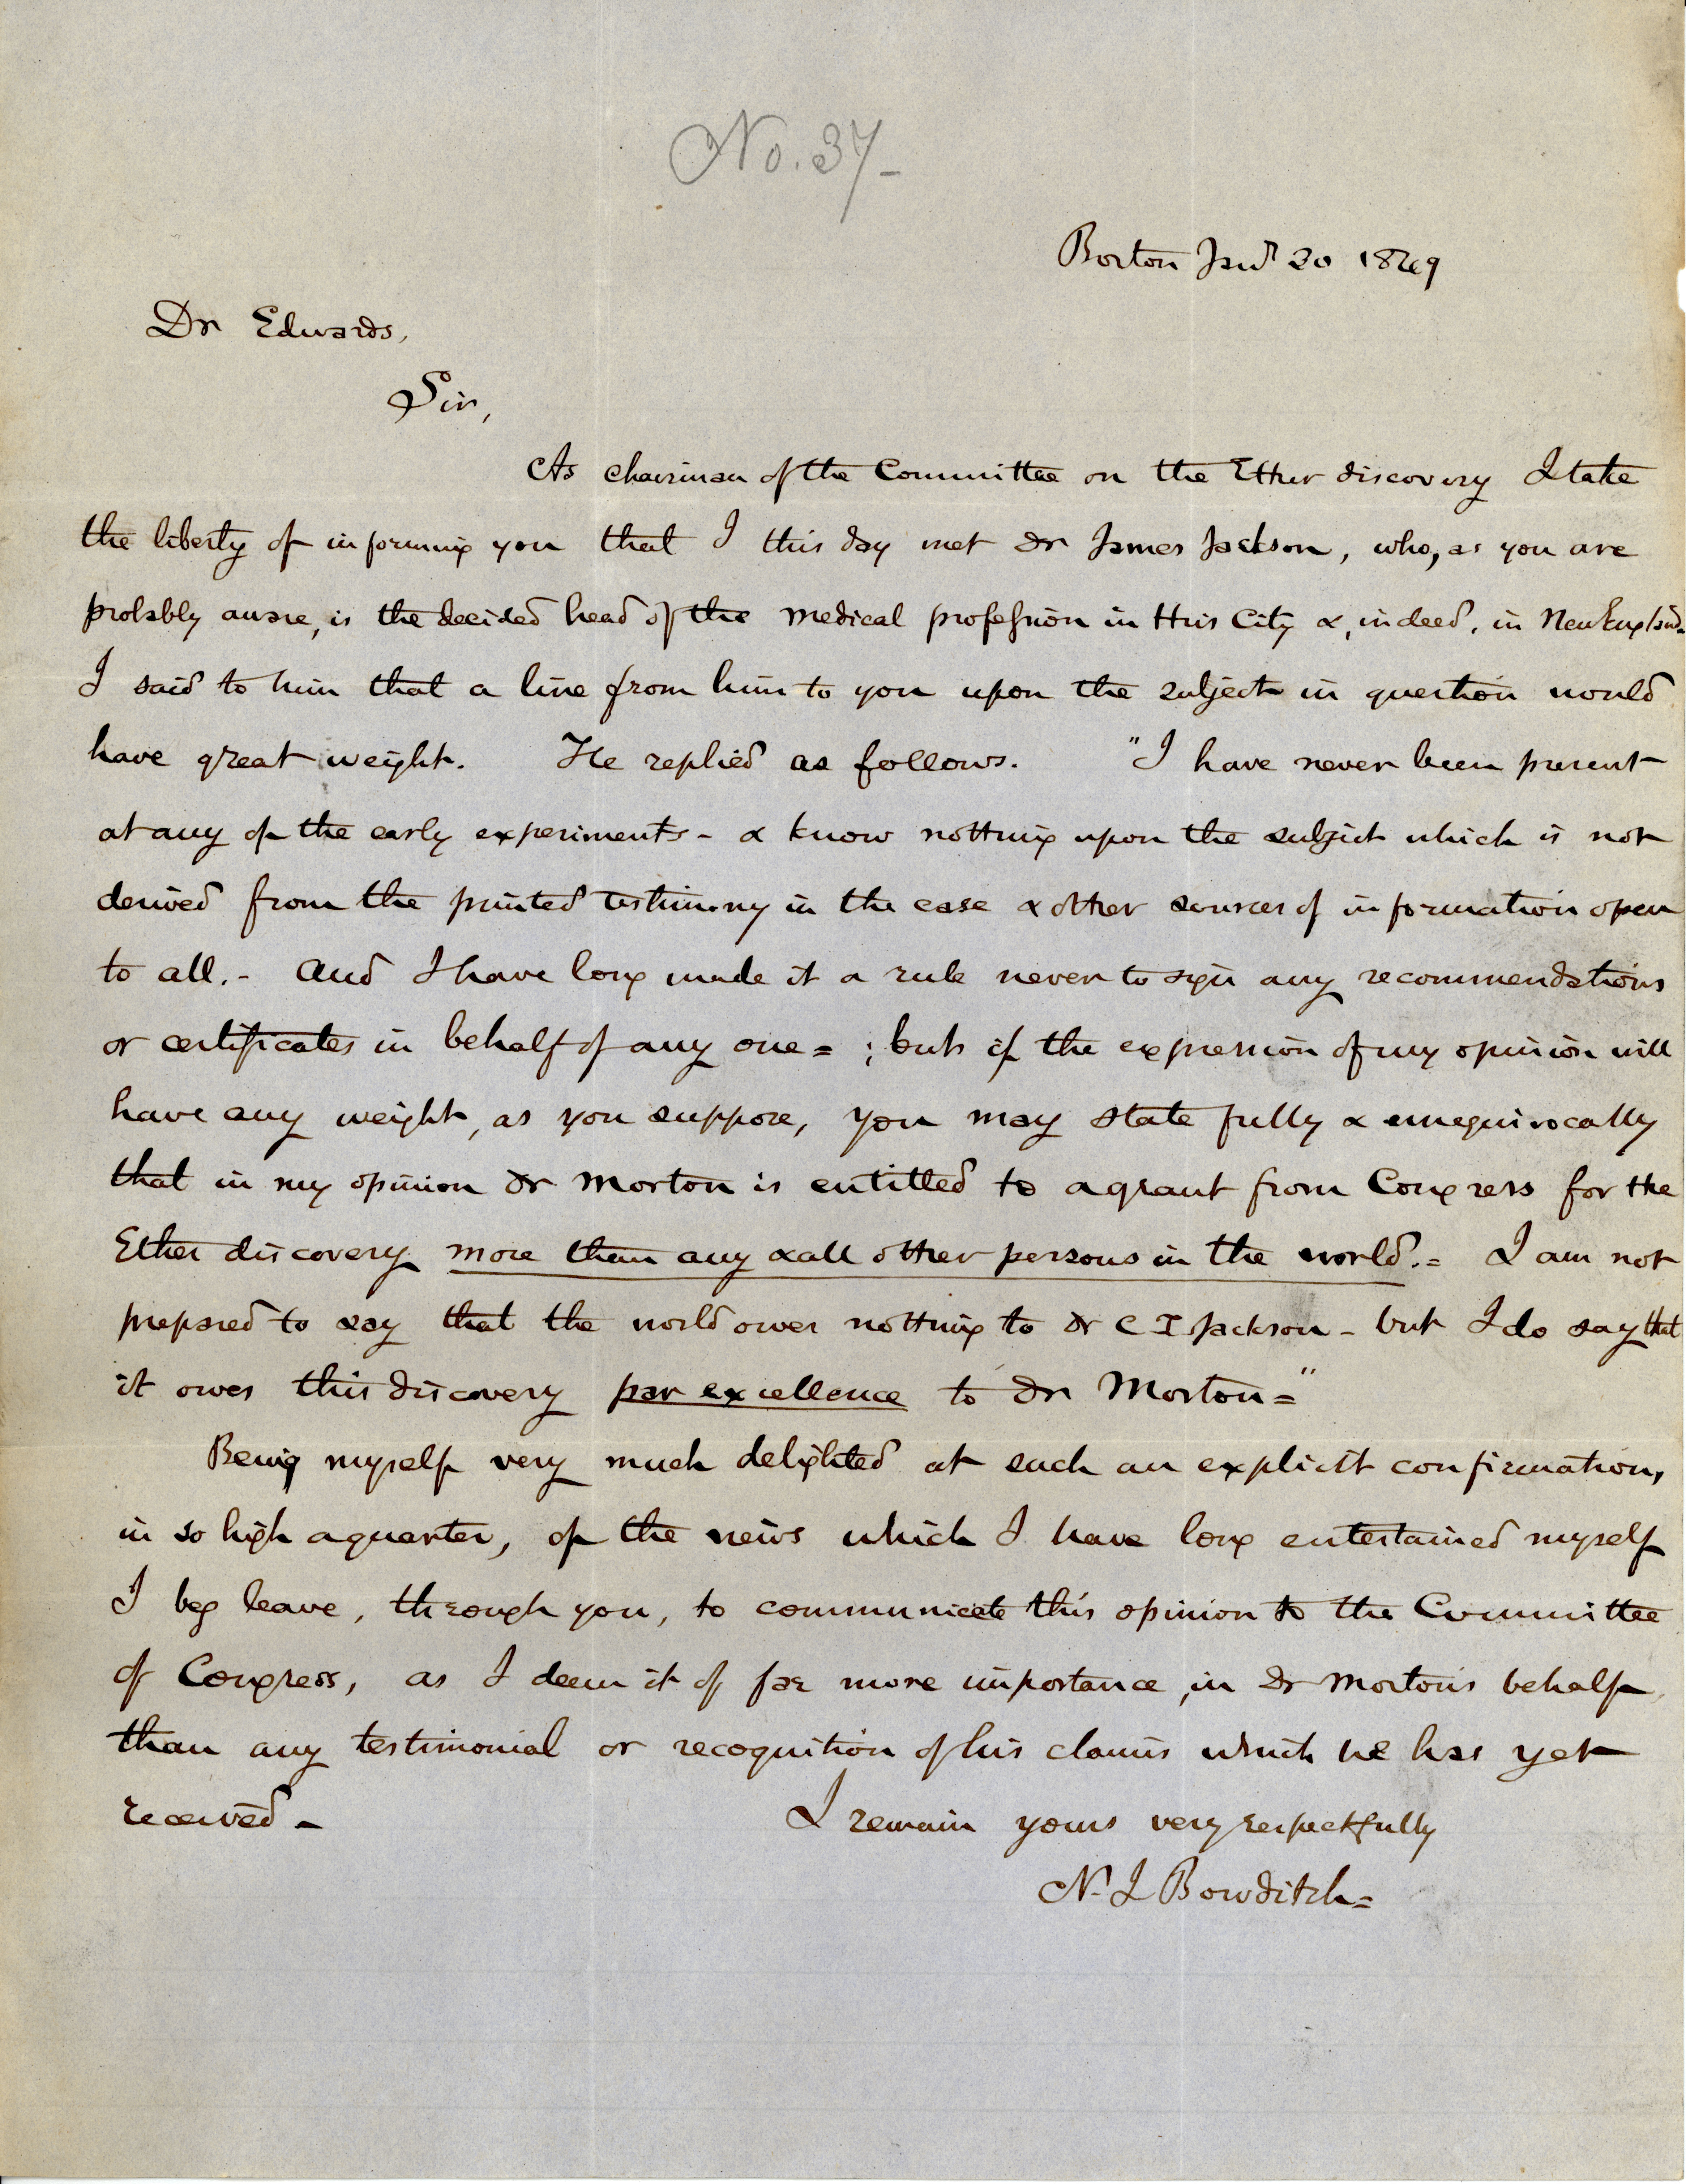 """Testimony arguing that Dr. Morton deserves credit for the ether discovery, """"more than any and all other persons in the world."""" Report 114, House Committee on Ether Discovery, July 30, 1849. (Records of the U.S. House, National Archives)"""